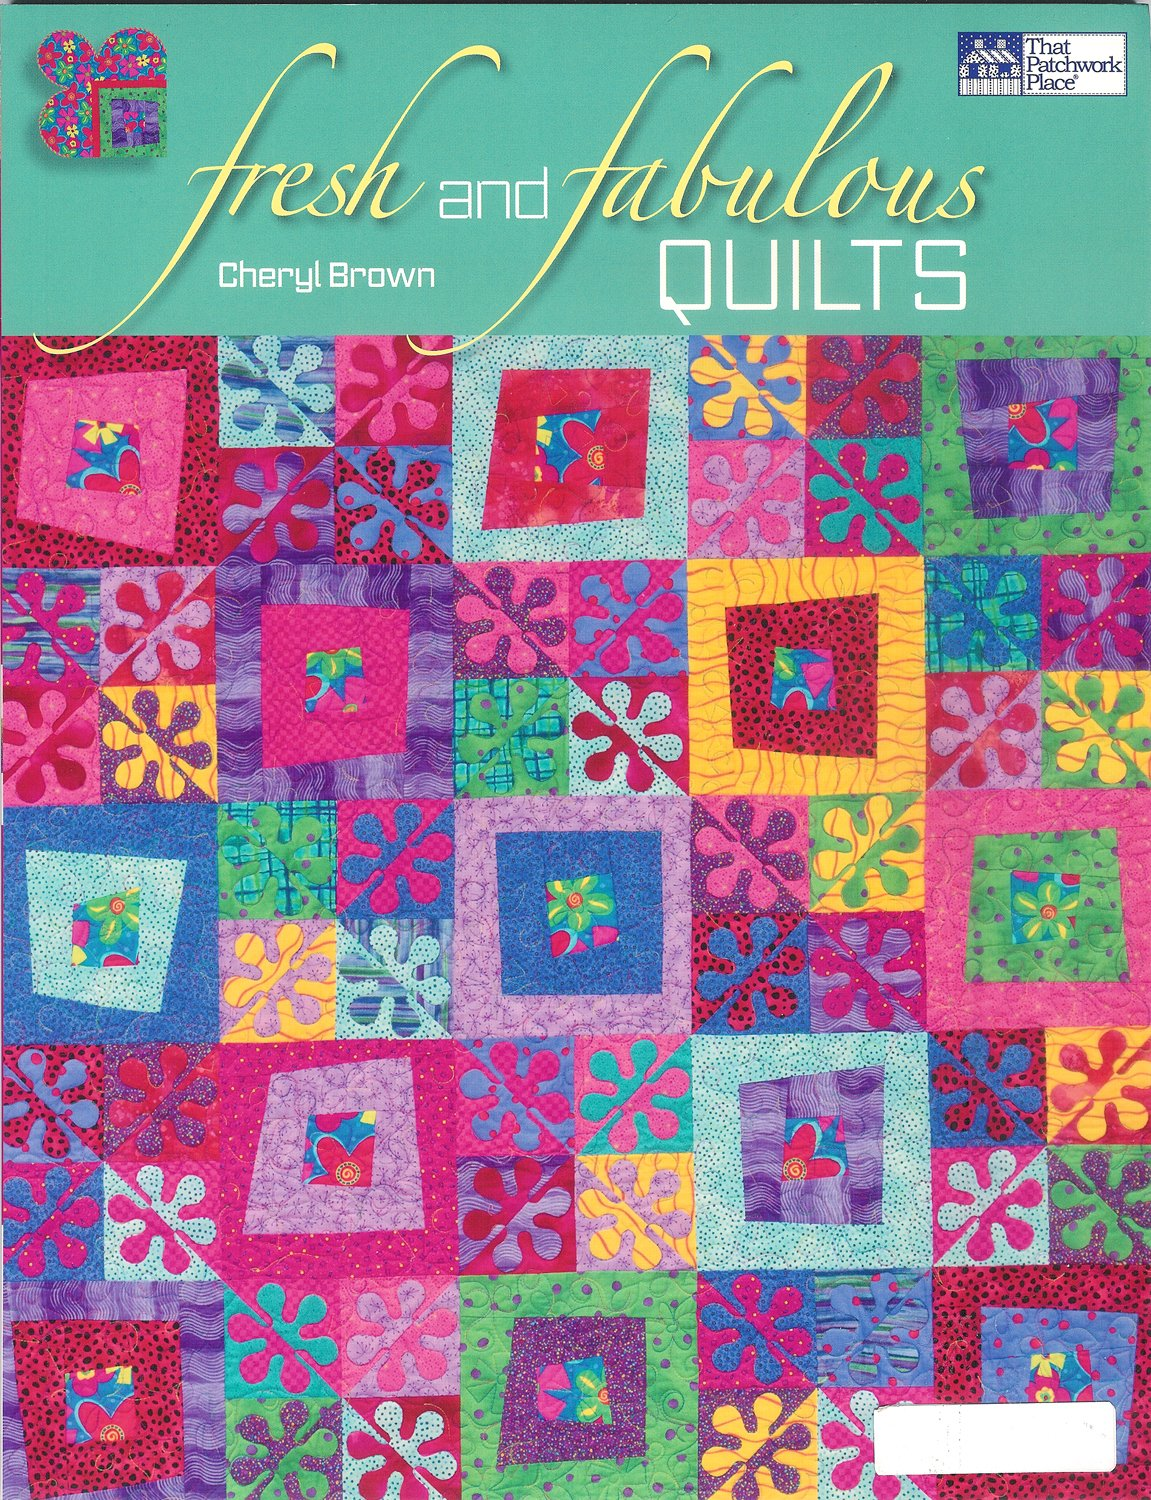 Fresh and Fabulous Quilts<br/>Cheryl Brown